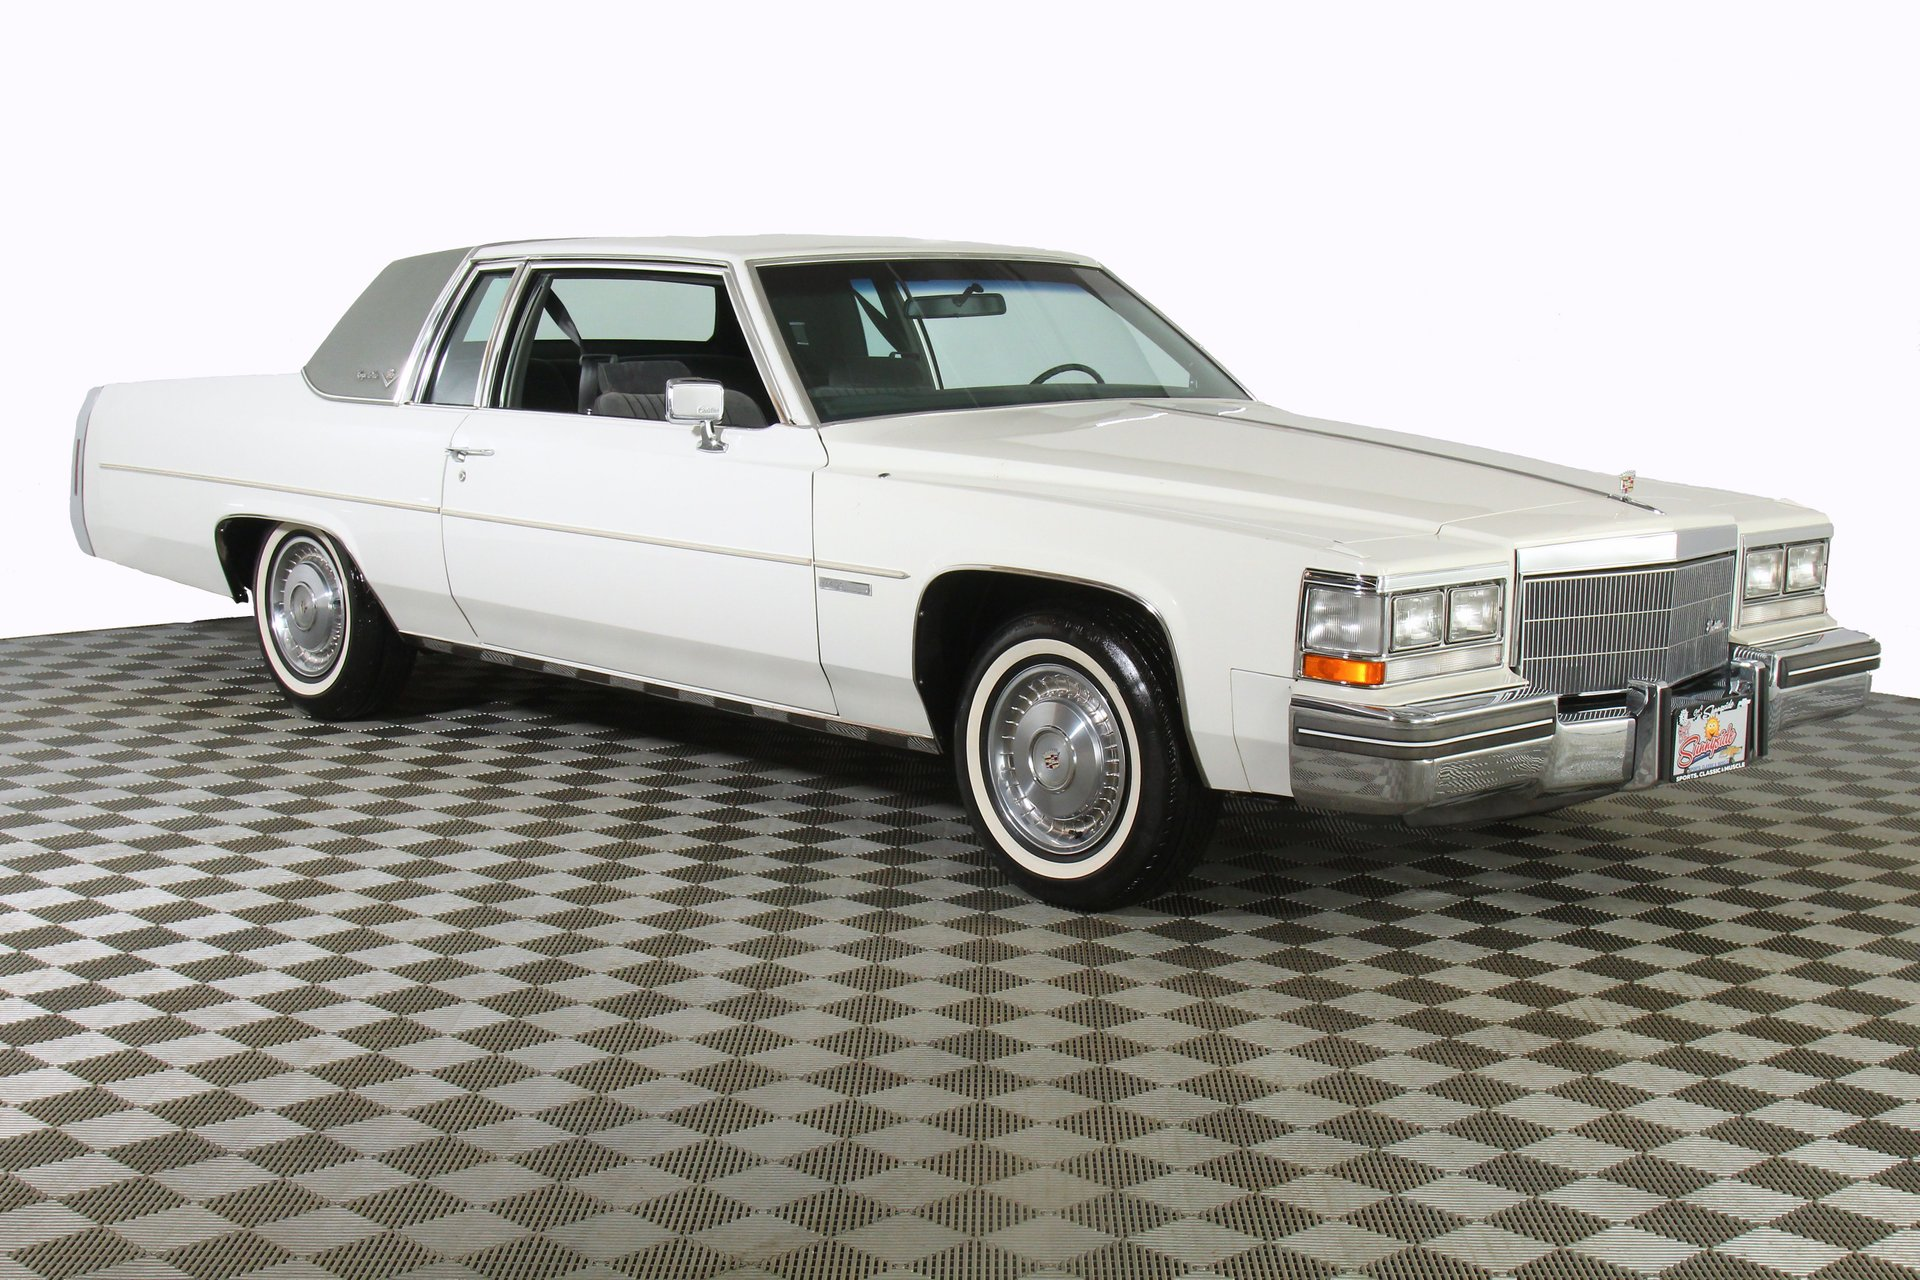 1983 Cadillac Coupe DeVille